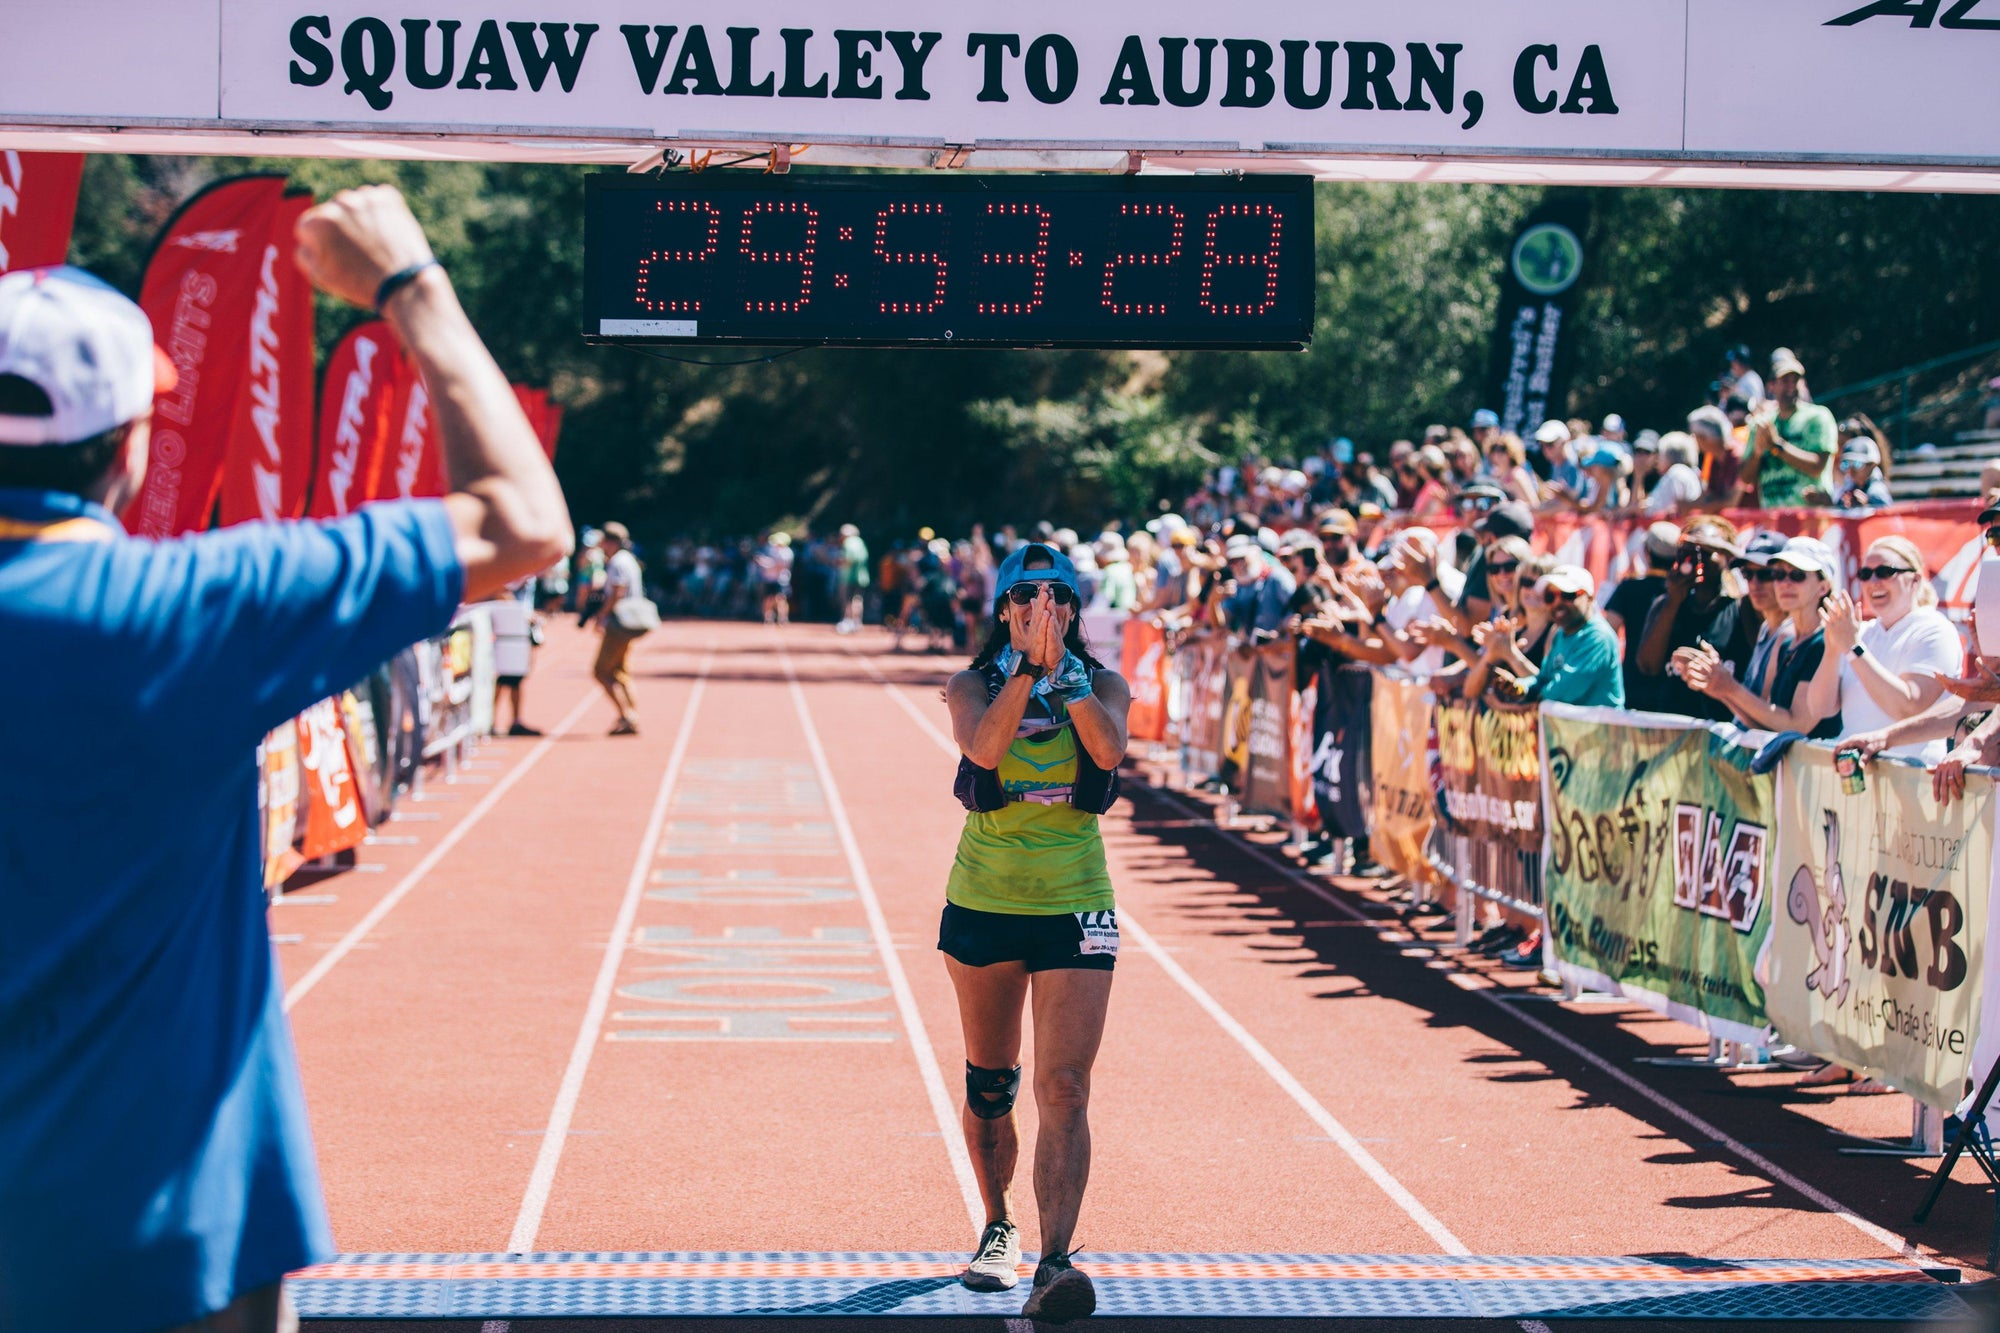 Andrea Kooiman - An Everyday Mom at Western States 100